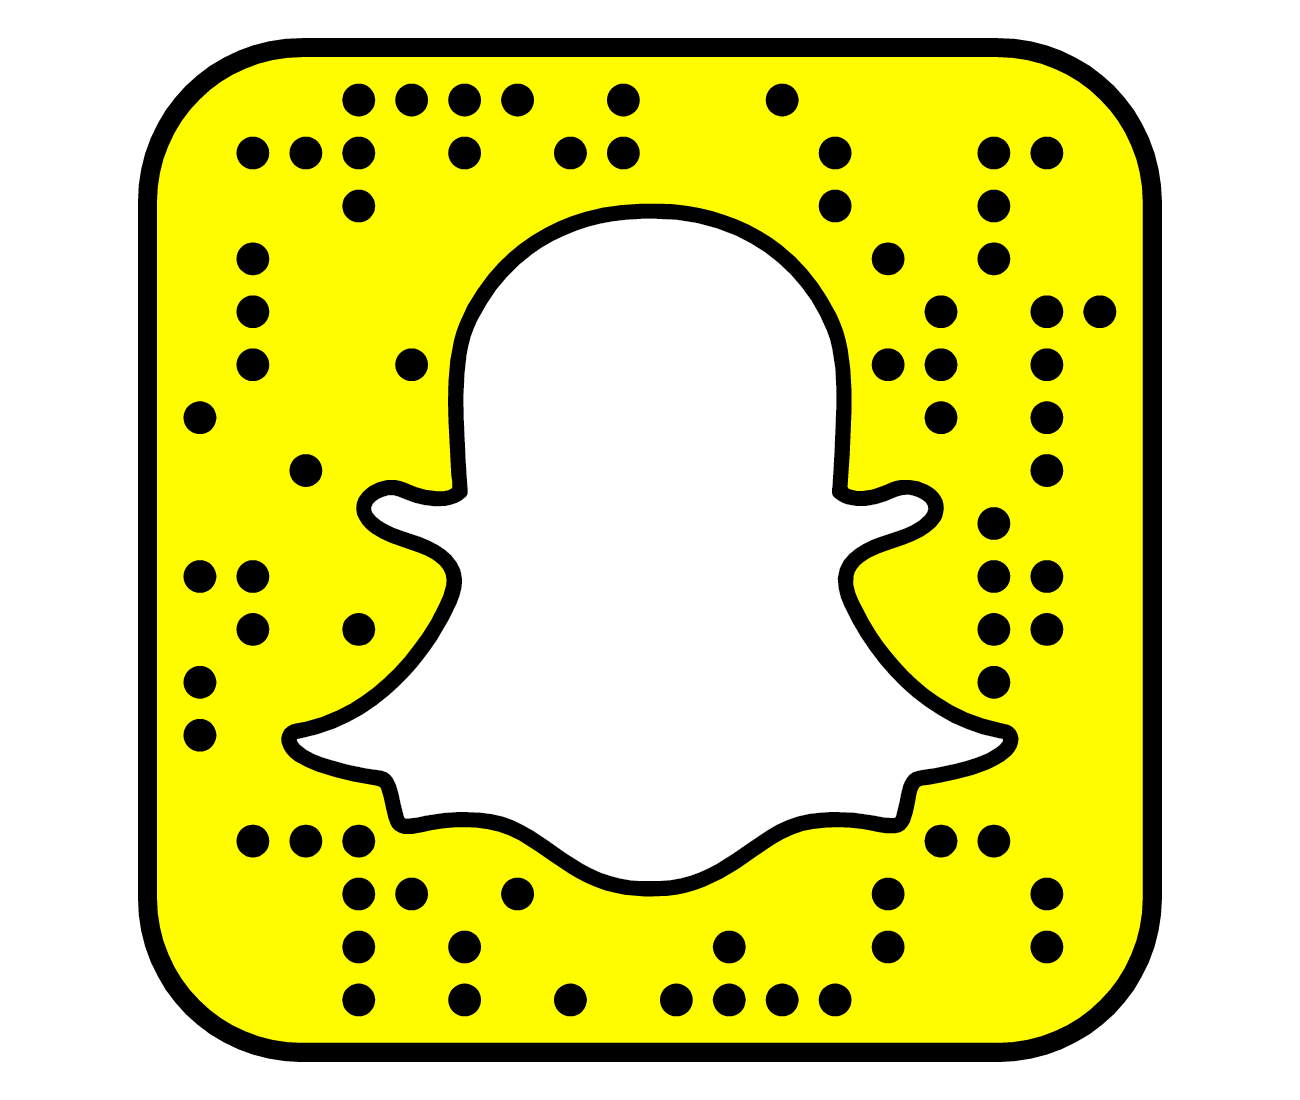 Snapchat Logo PNG Free Download #46428 - Free Icons and PNG